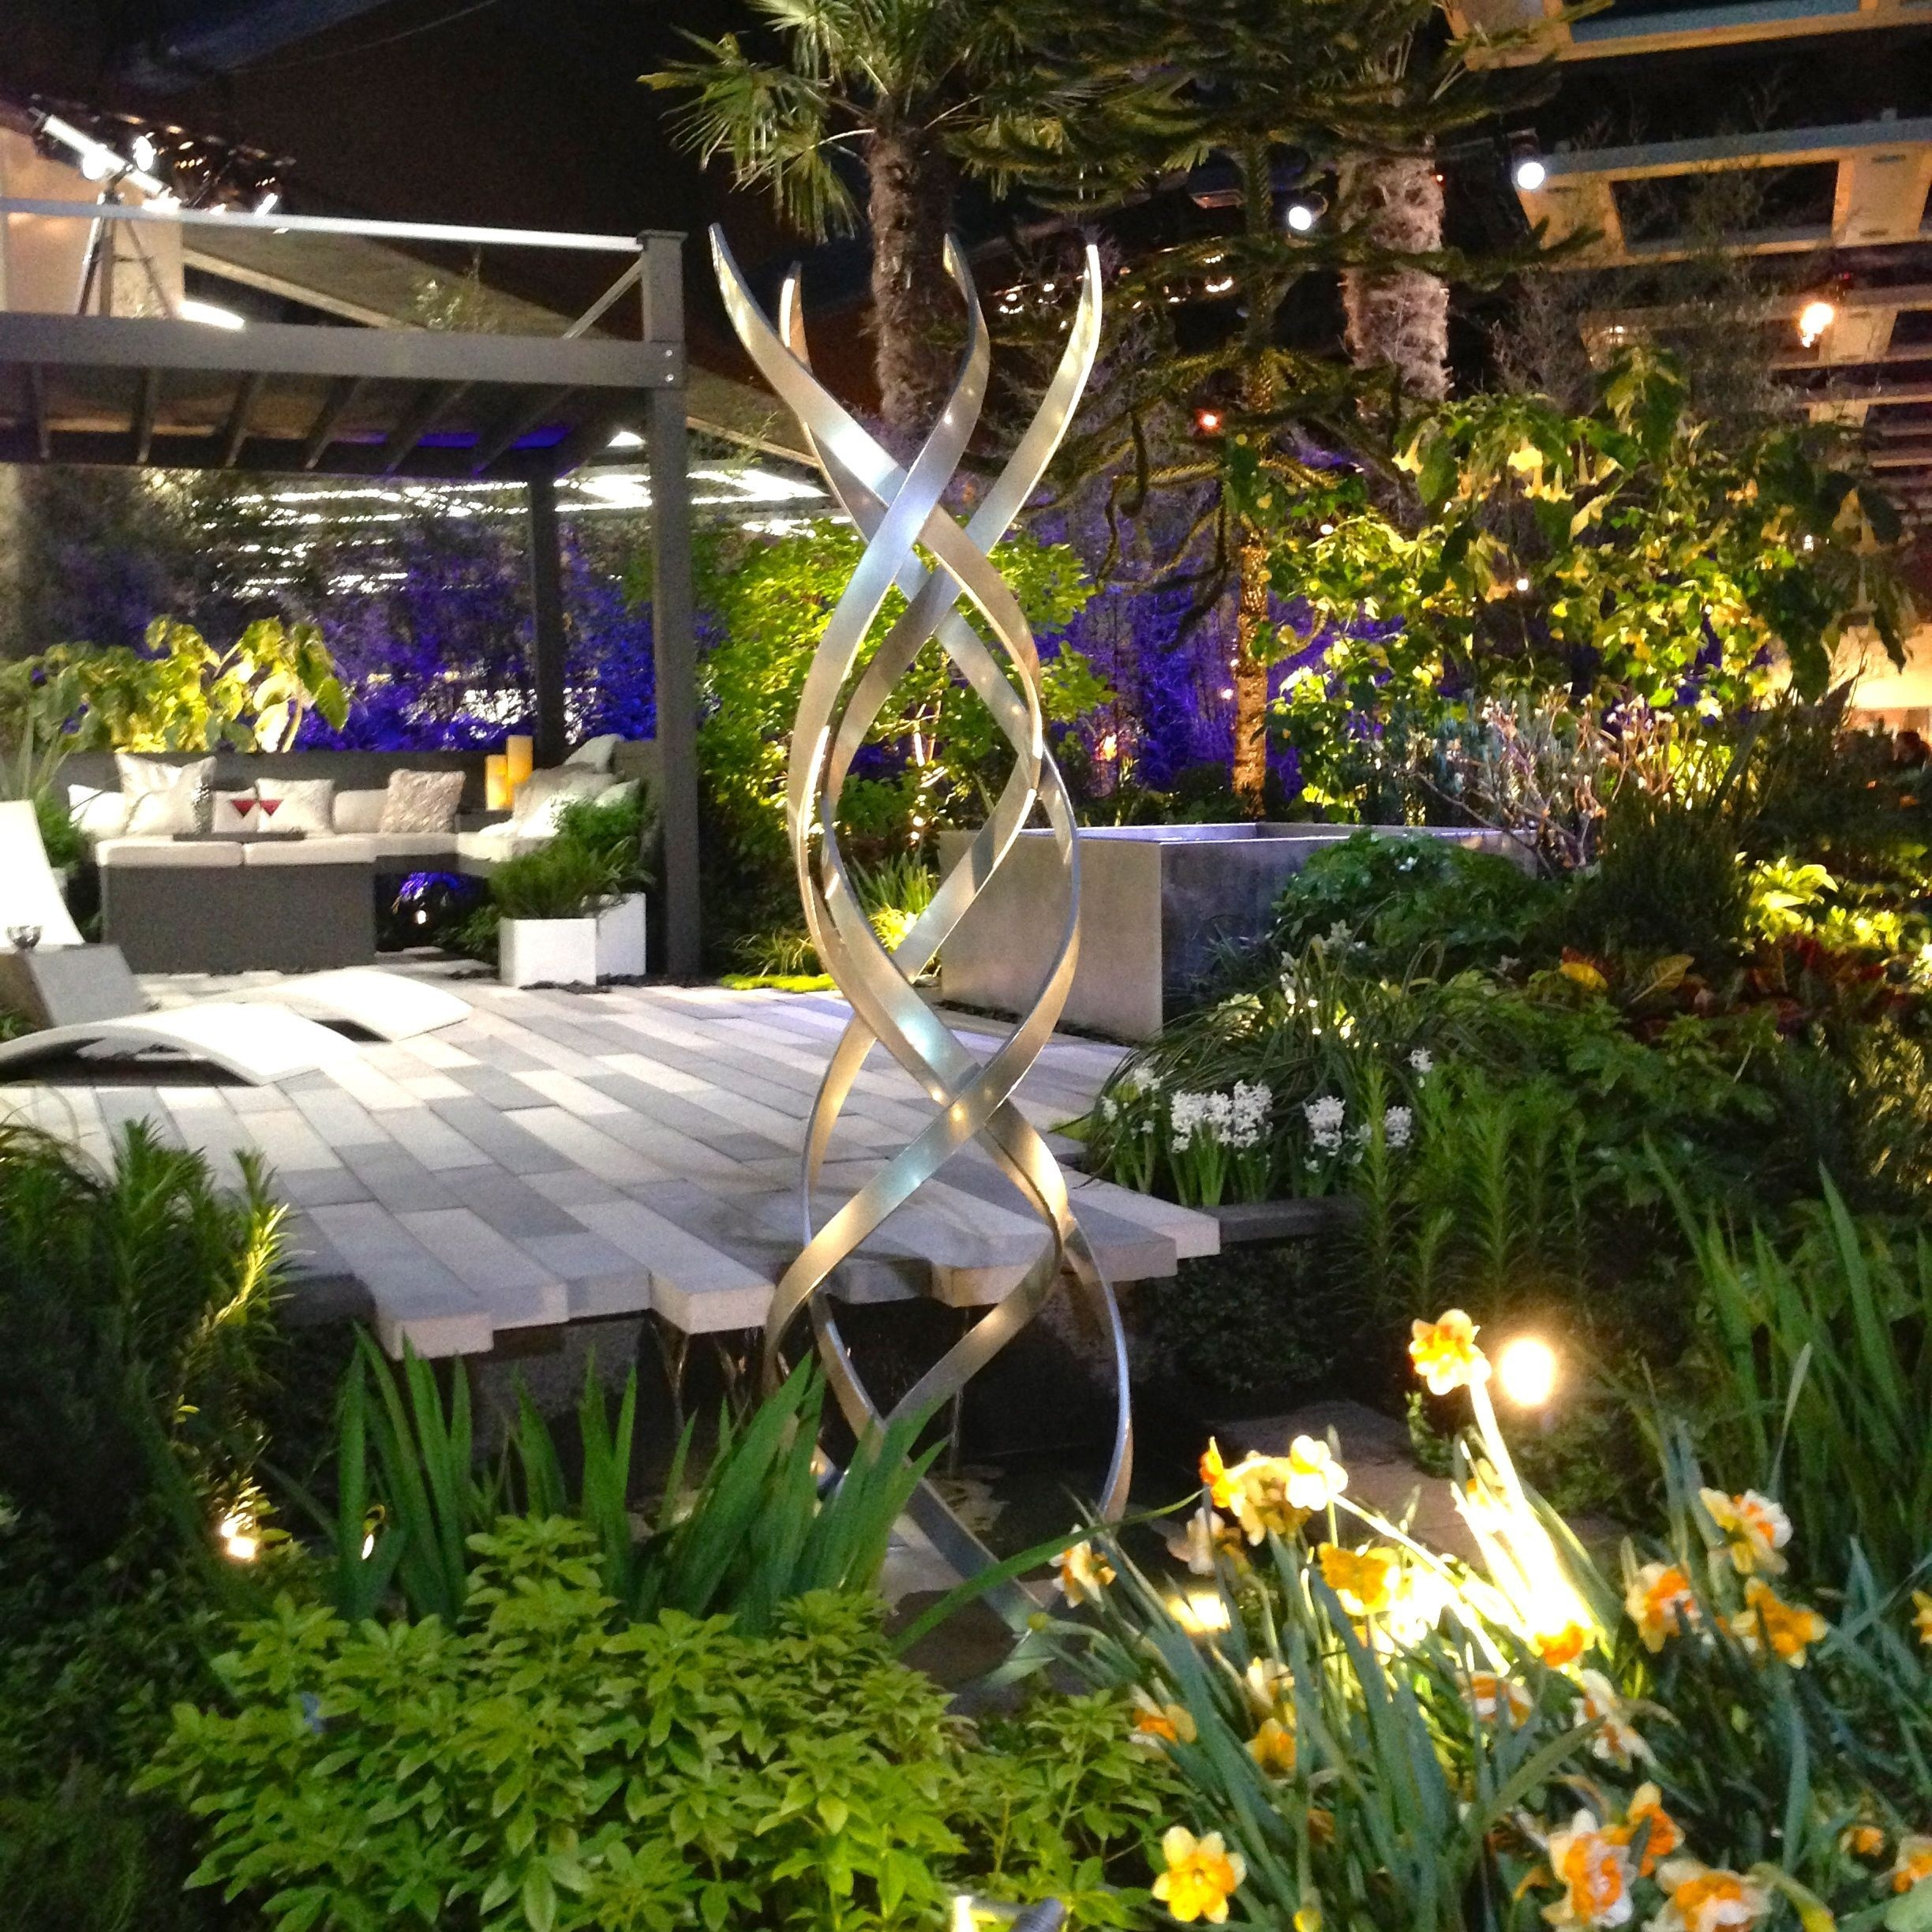 Modern Garden Landscape Lighting Pertaining To 2018 Outdoor Garden Design – Luxury Modern Water Garden With Beautiful (View 8 of 20)